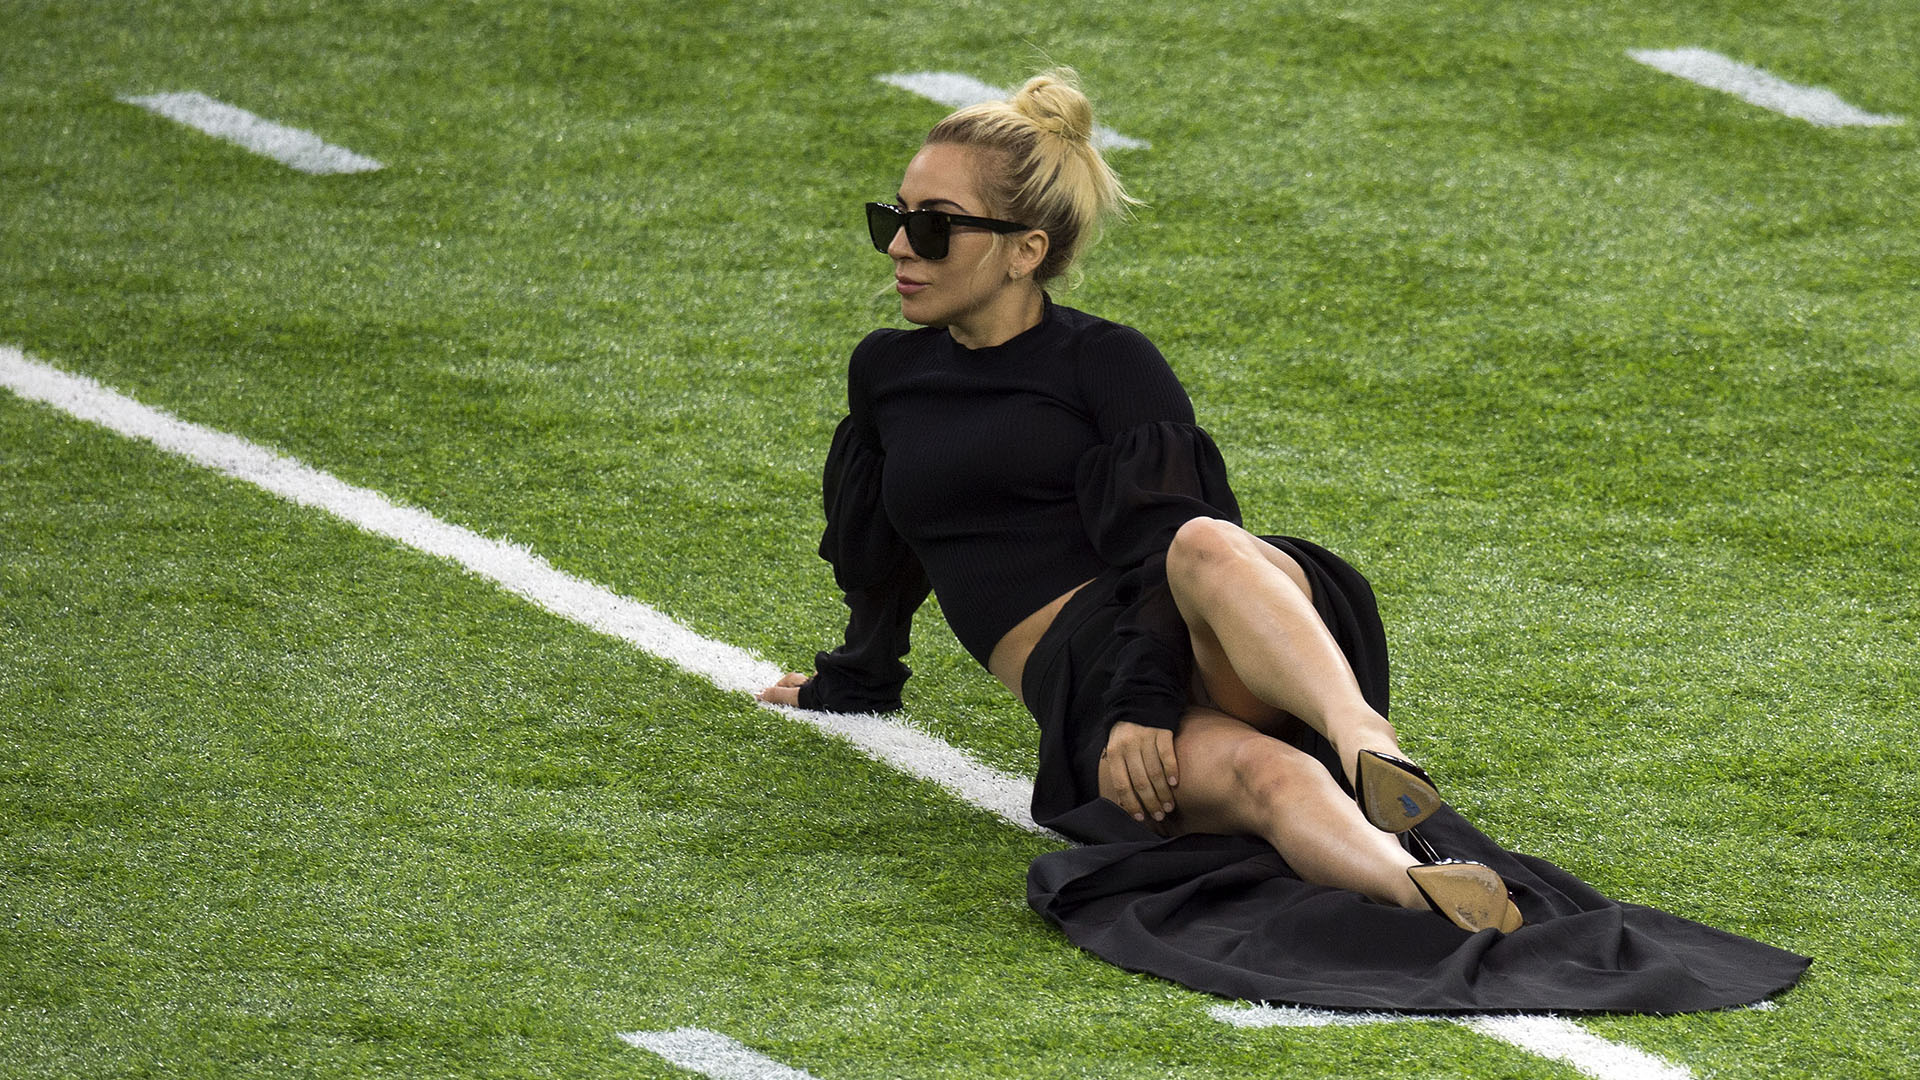 Singer Lady Gaga poses on the field at the Super Bowl LI before the start of the game at Houston NRG Stadium in Houston, Texas, on February 5, 2017. / AFP PHOTO / VALERIE MACON